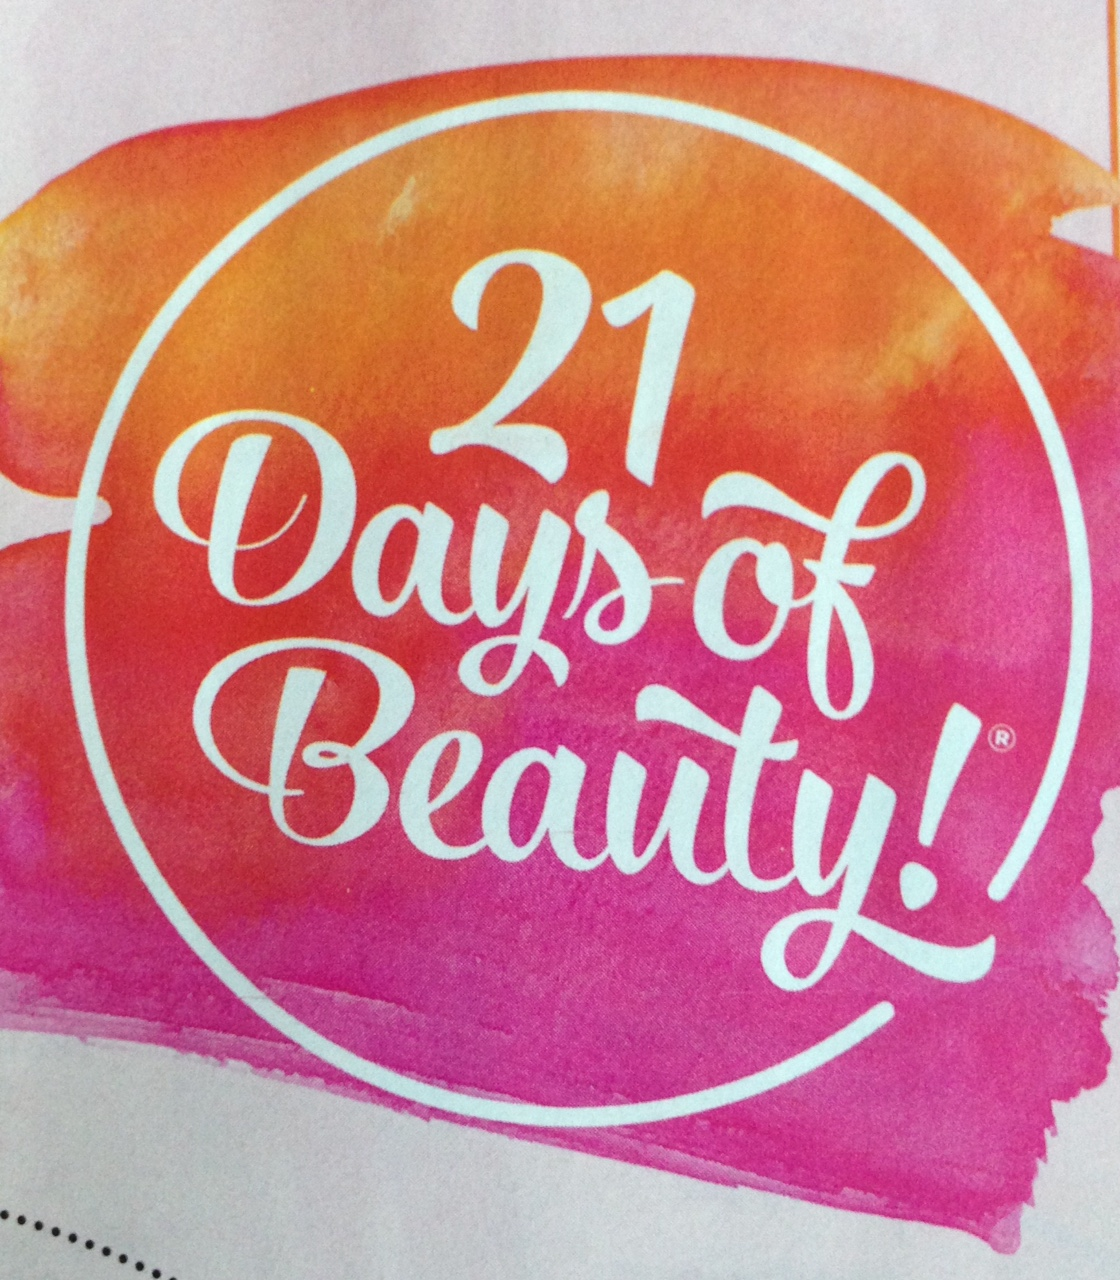 Ulta 21 Days of Beauty Fall 2021 Is Already Here! – Never Say Die Beauty